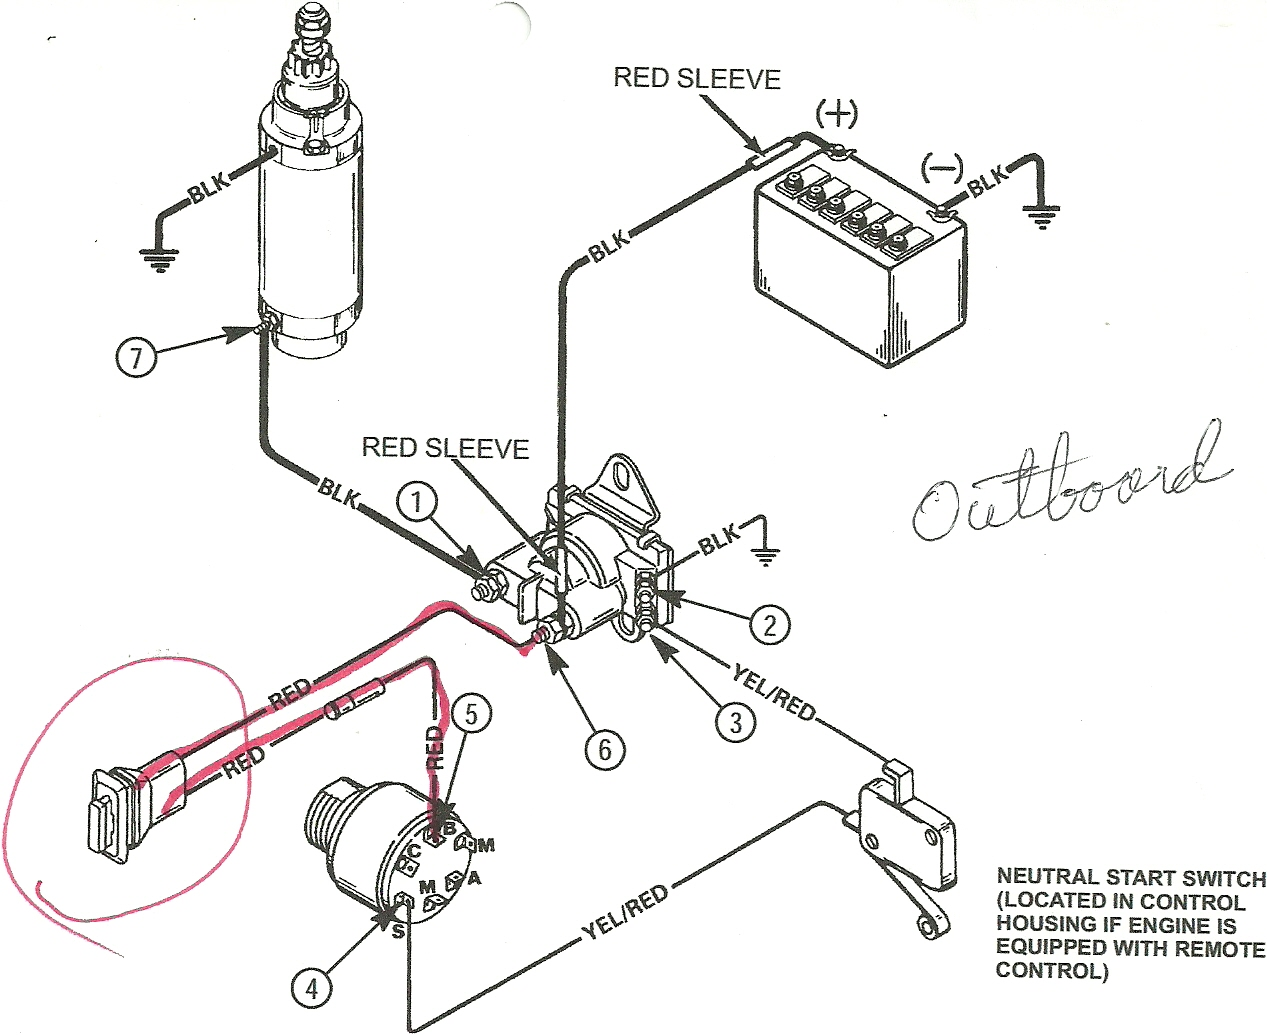 Ranger Boat Starter Switch Wiring Schematic Trusted Diagrams 2004 185 Vs Diagram Auto Electrical 04 Ford Fuse